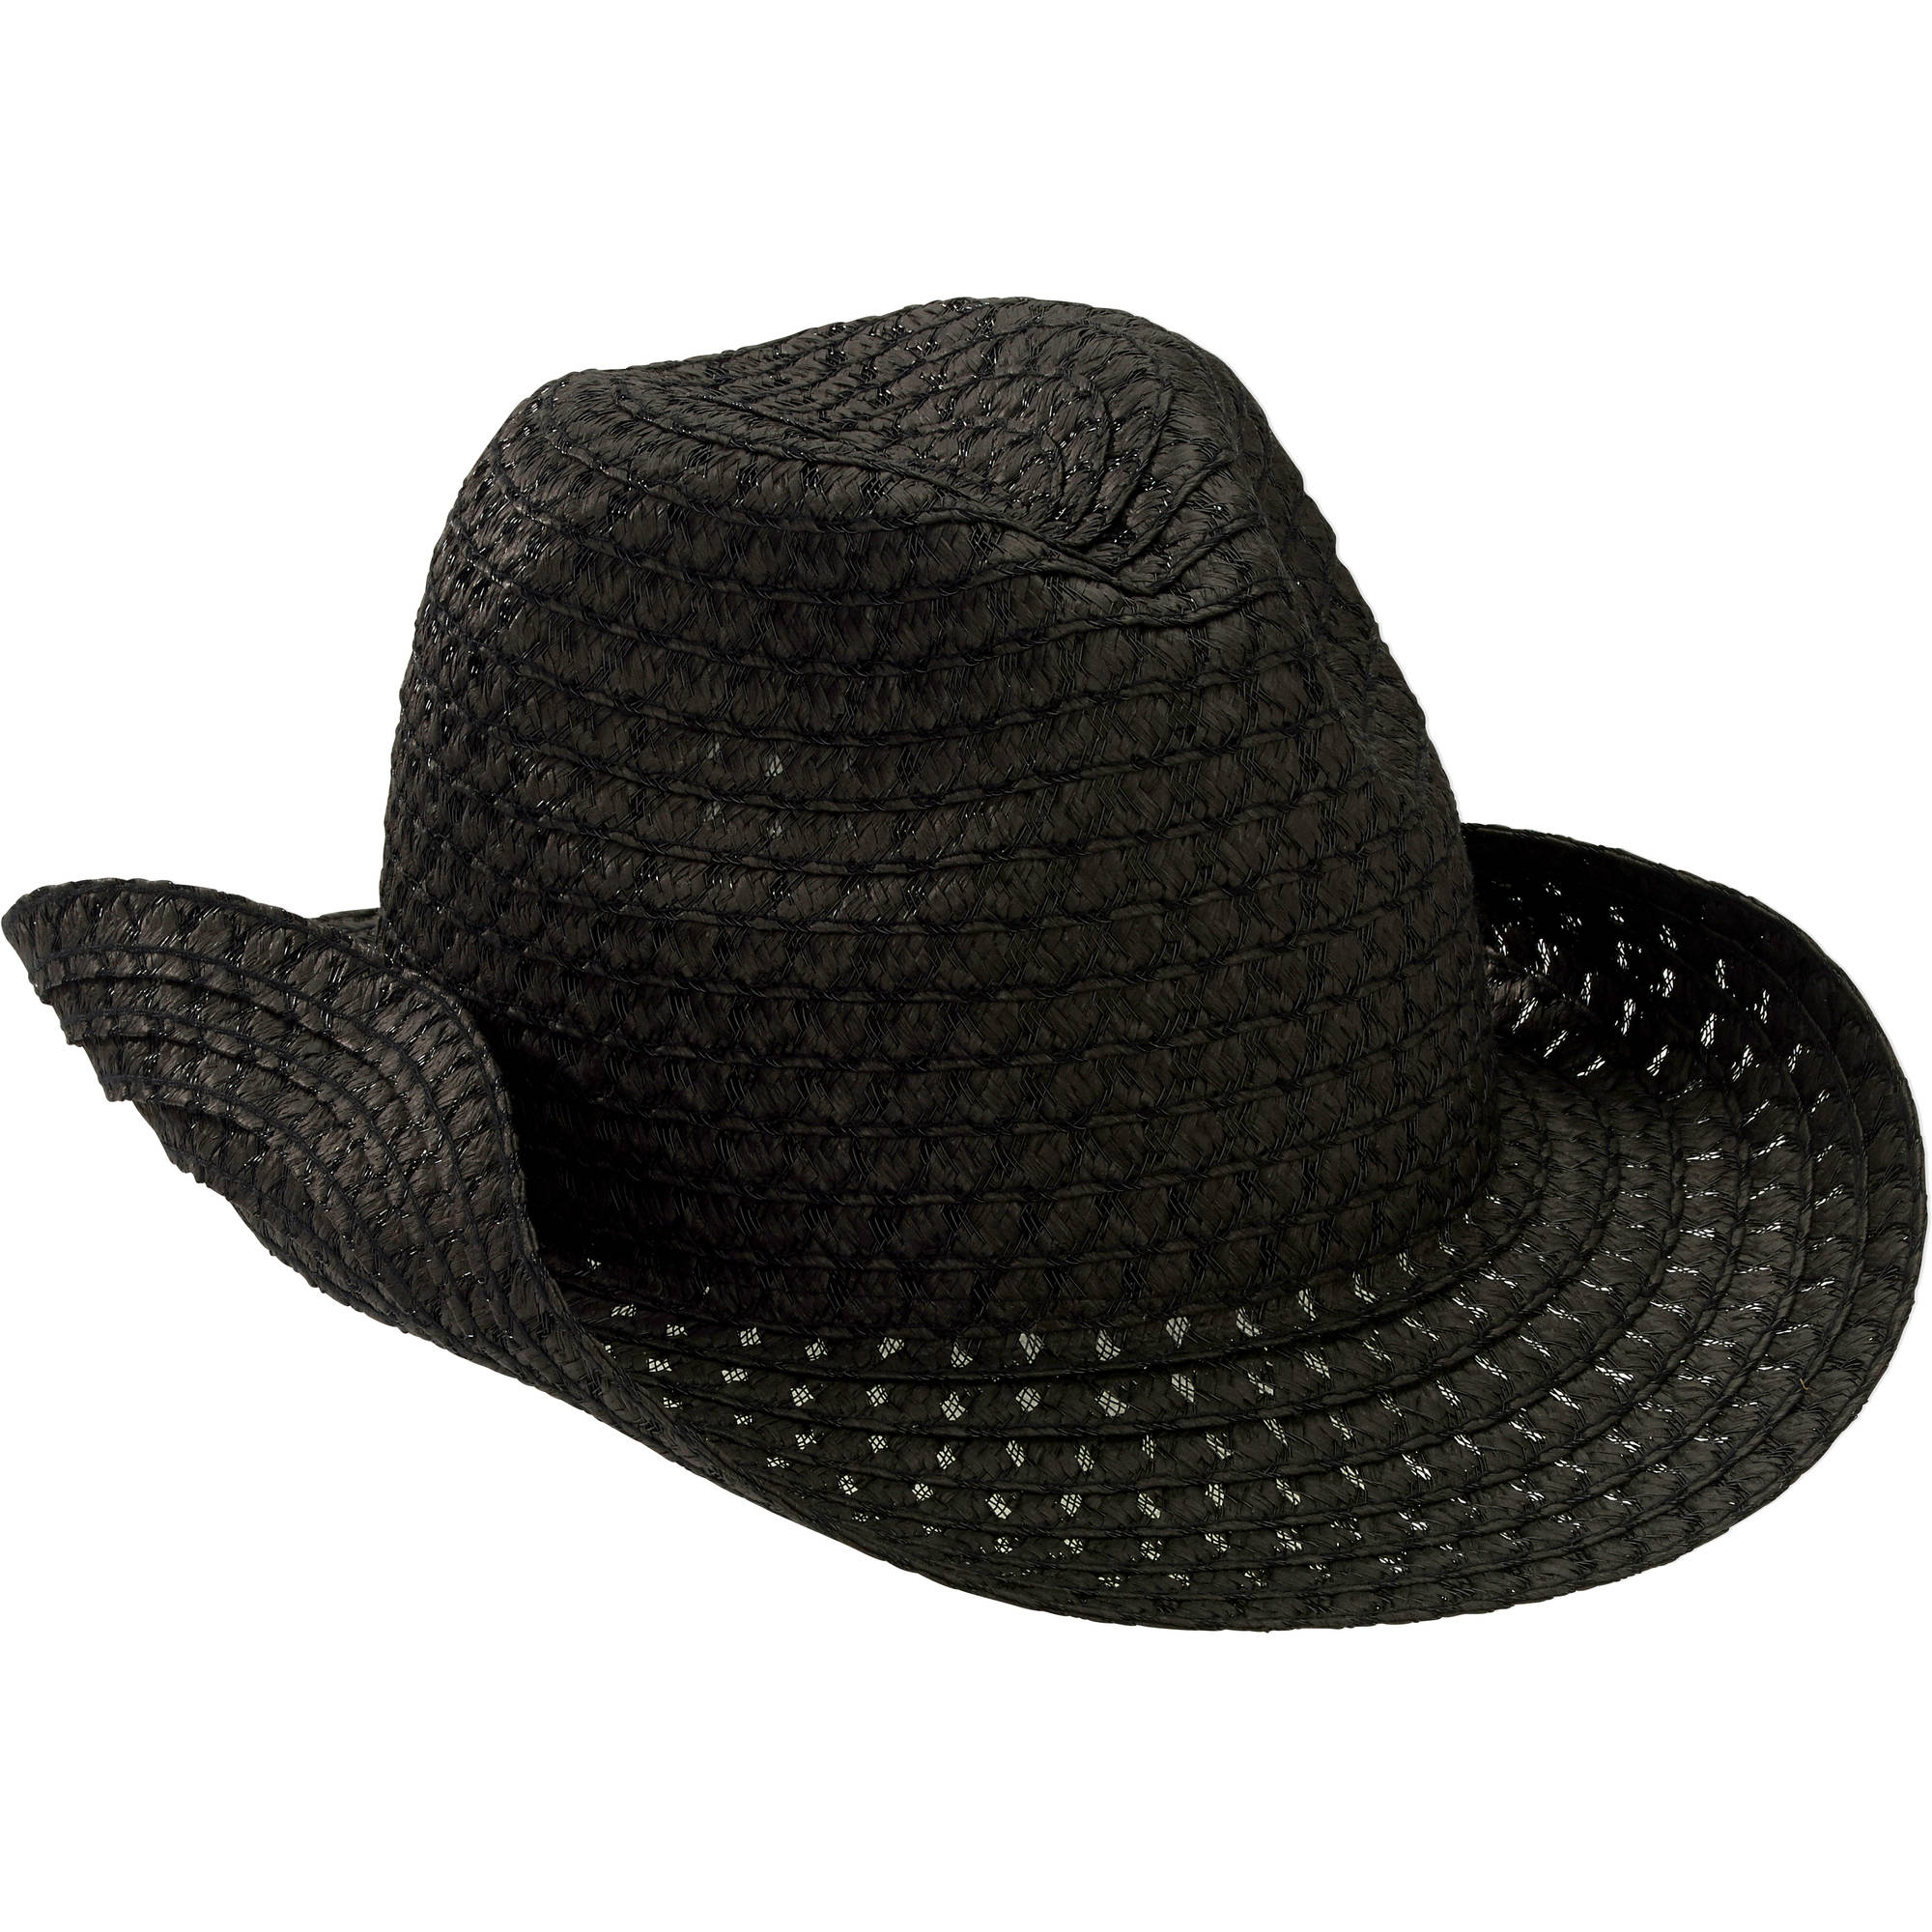 Women's Basic Straw Cowboy Hat